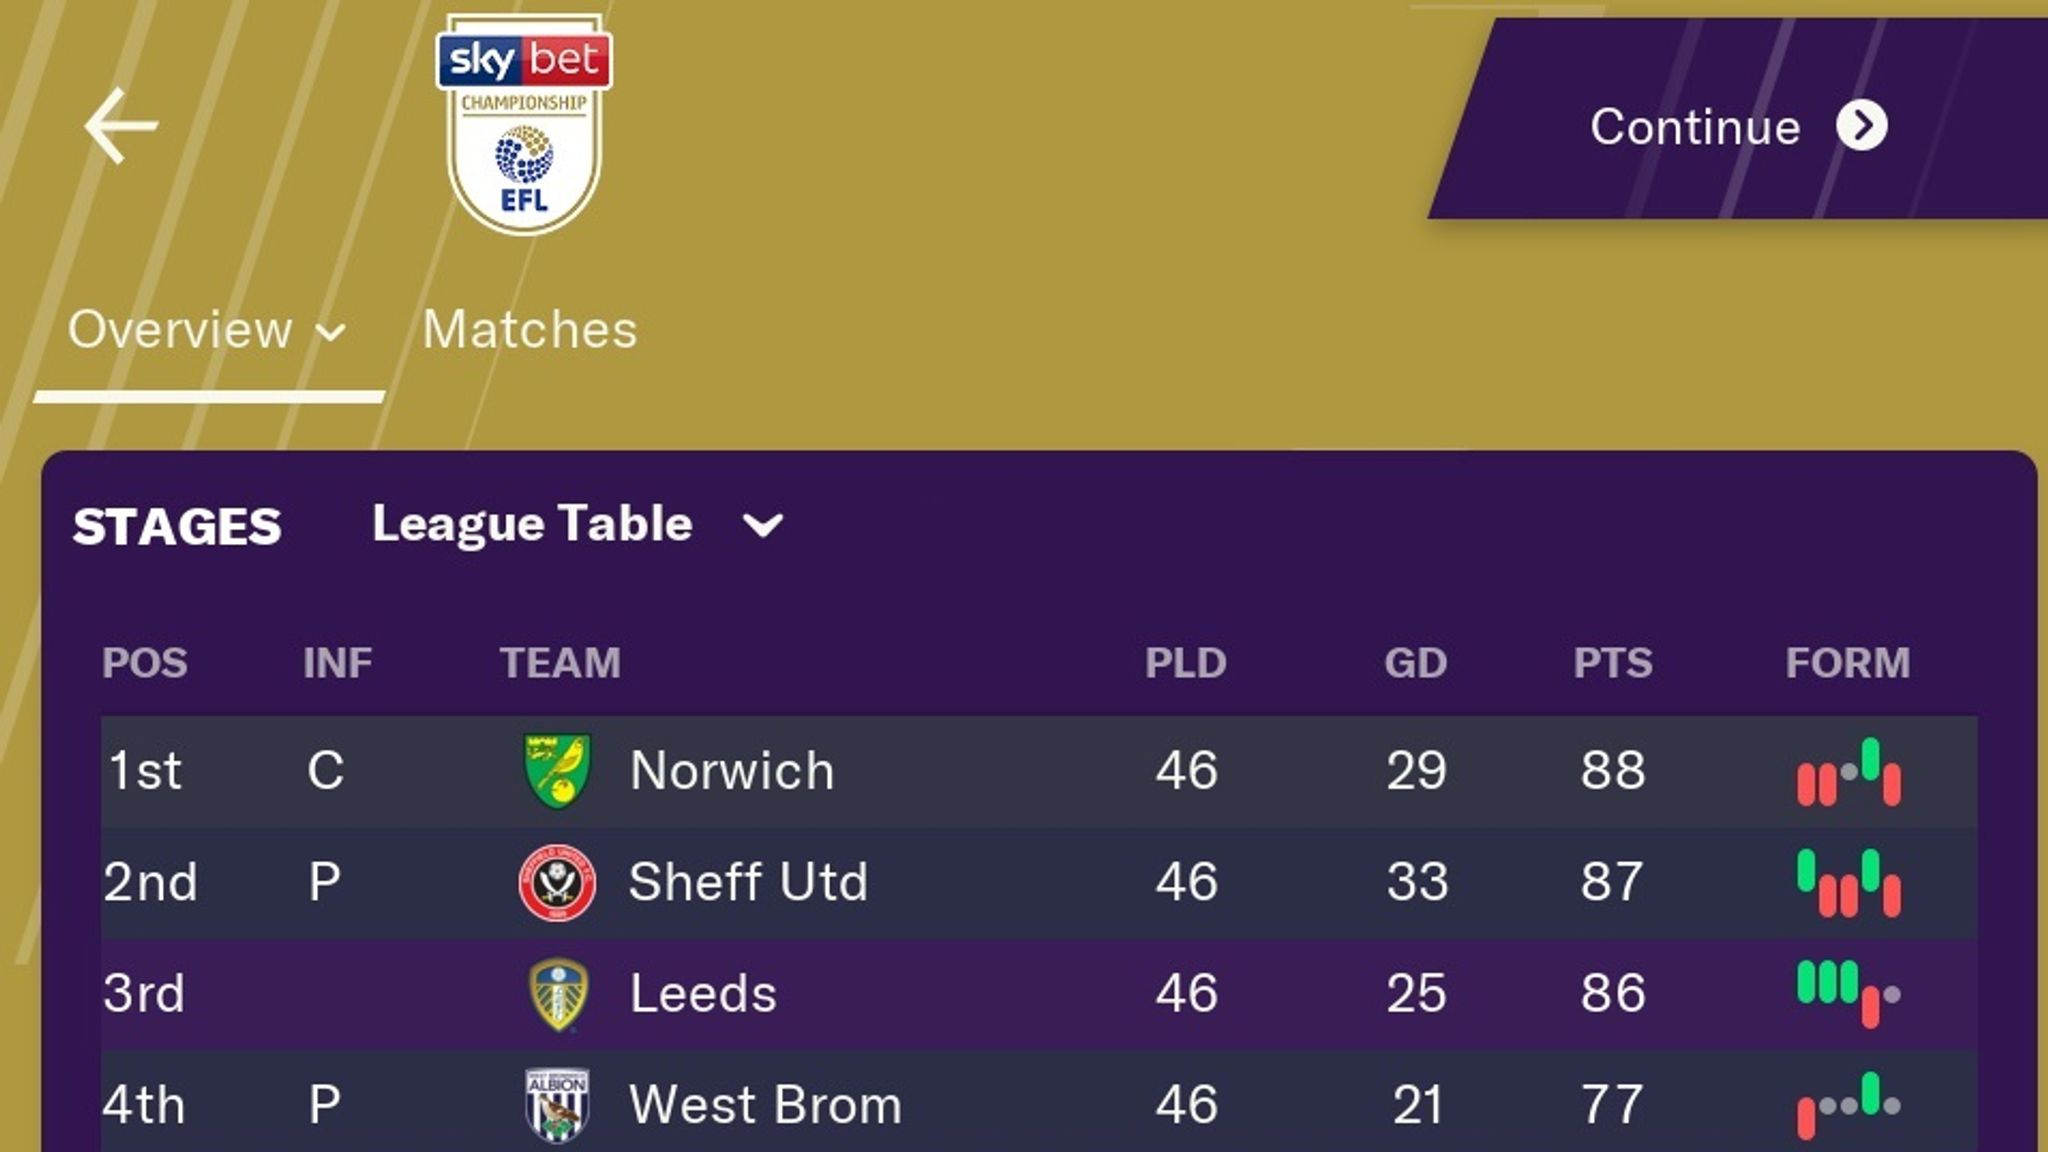 Football Manager 2019 Predicts Final Sky Bet Championship